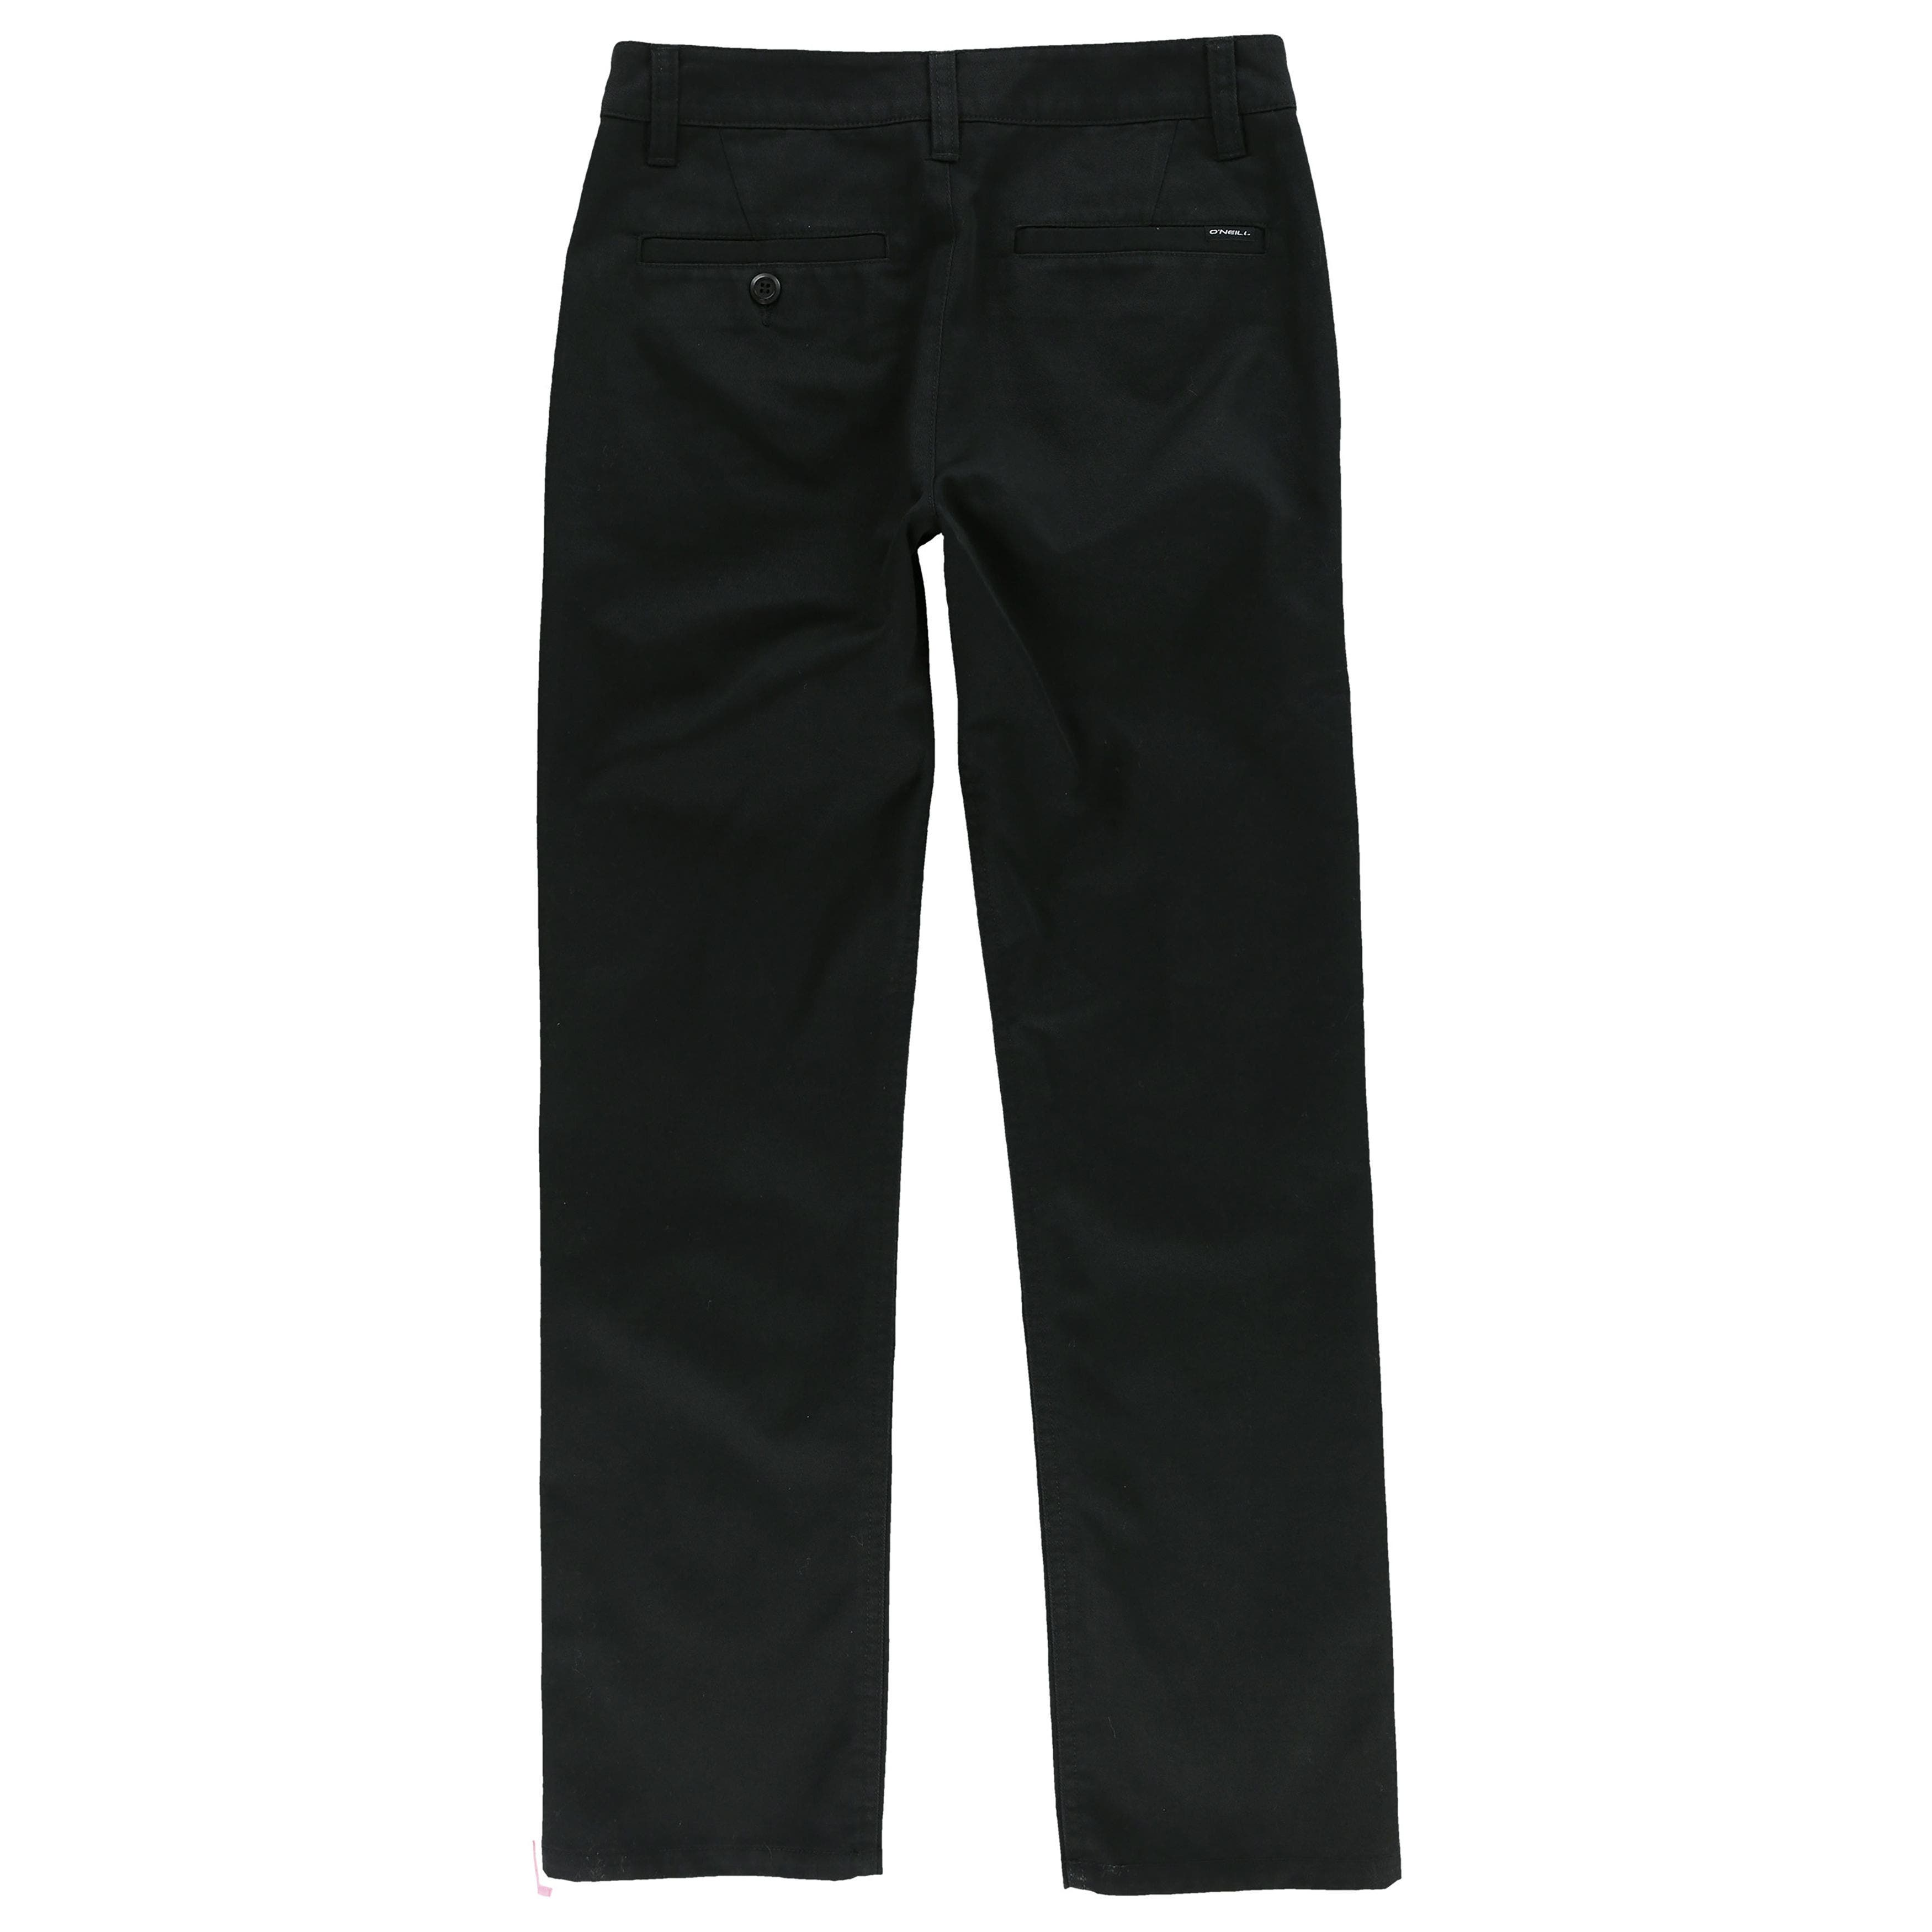 Contact Straight Leg Chinos,                         Main,                         color, 001